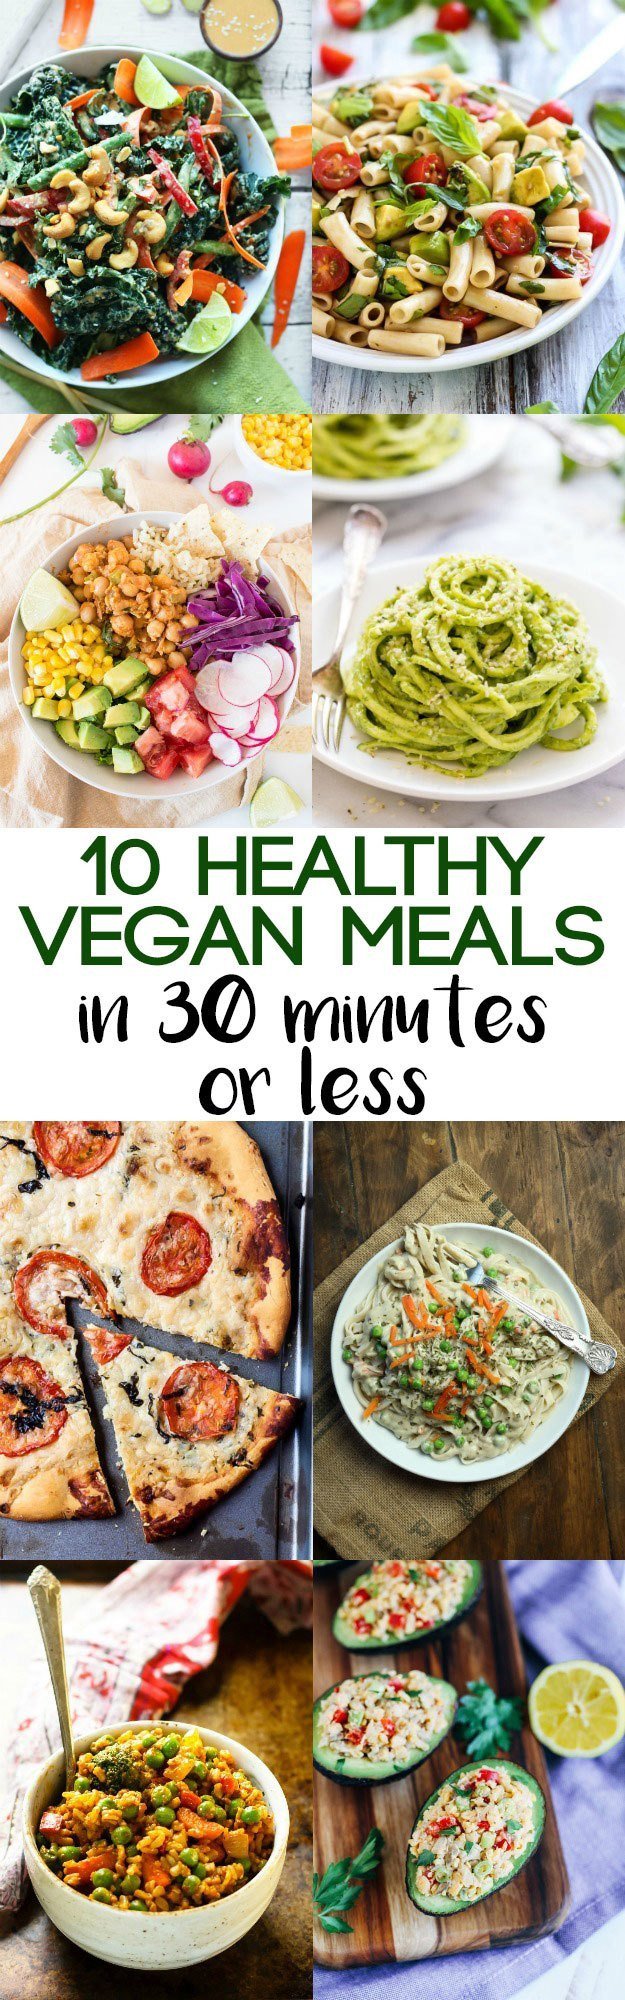 Healthy 30 Minute Meals  10 Healthy Vegan Meals in 30 Minutes or Less